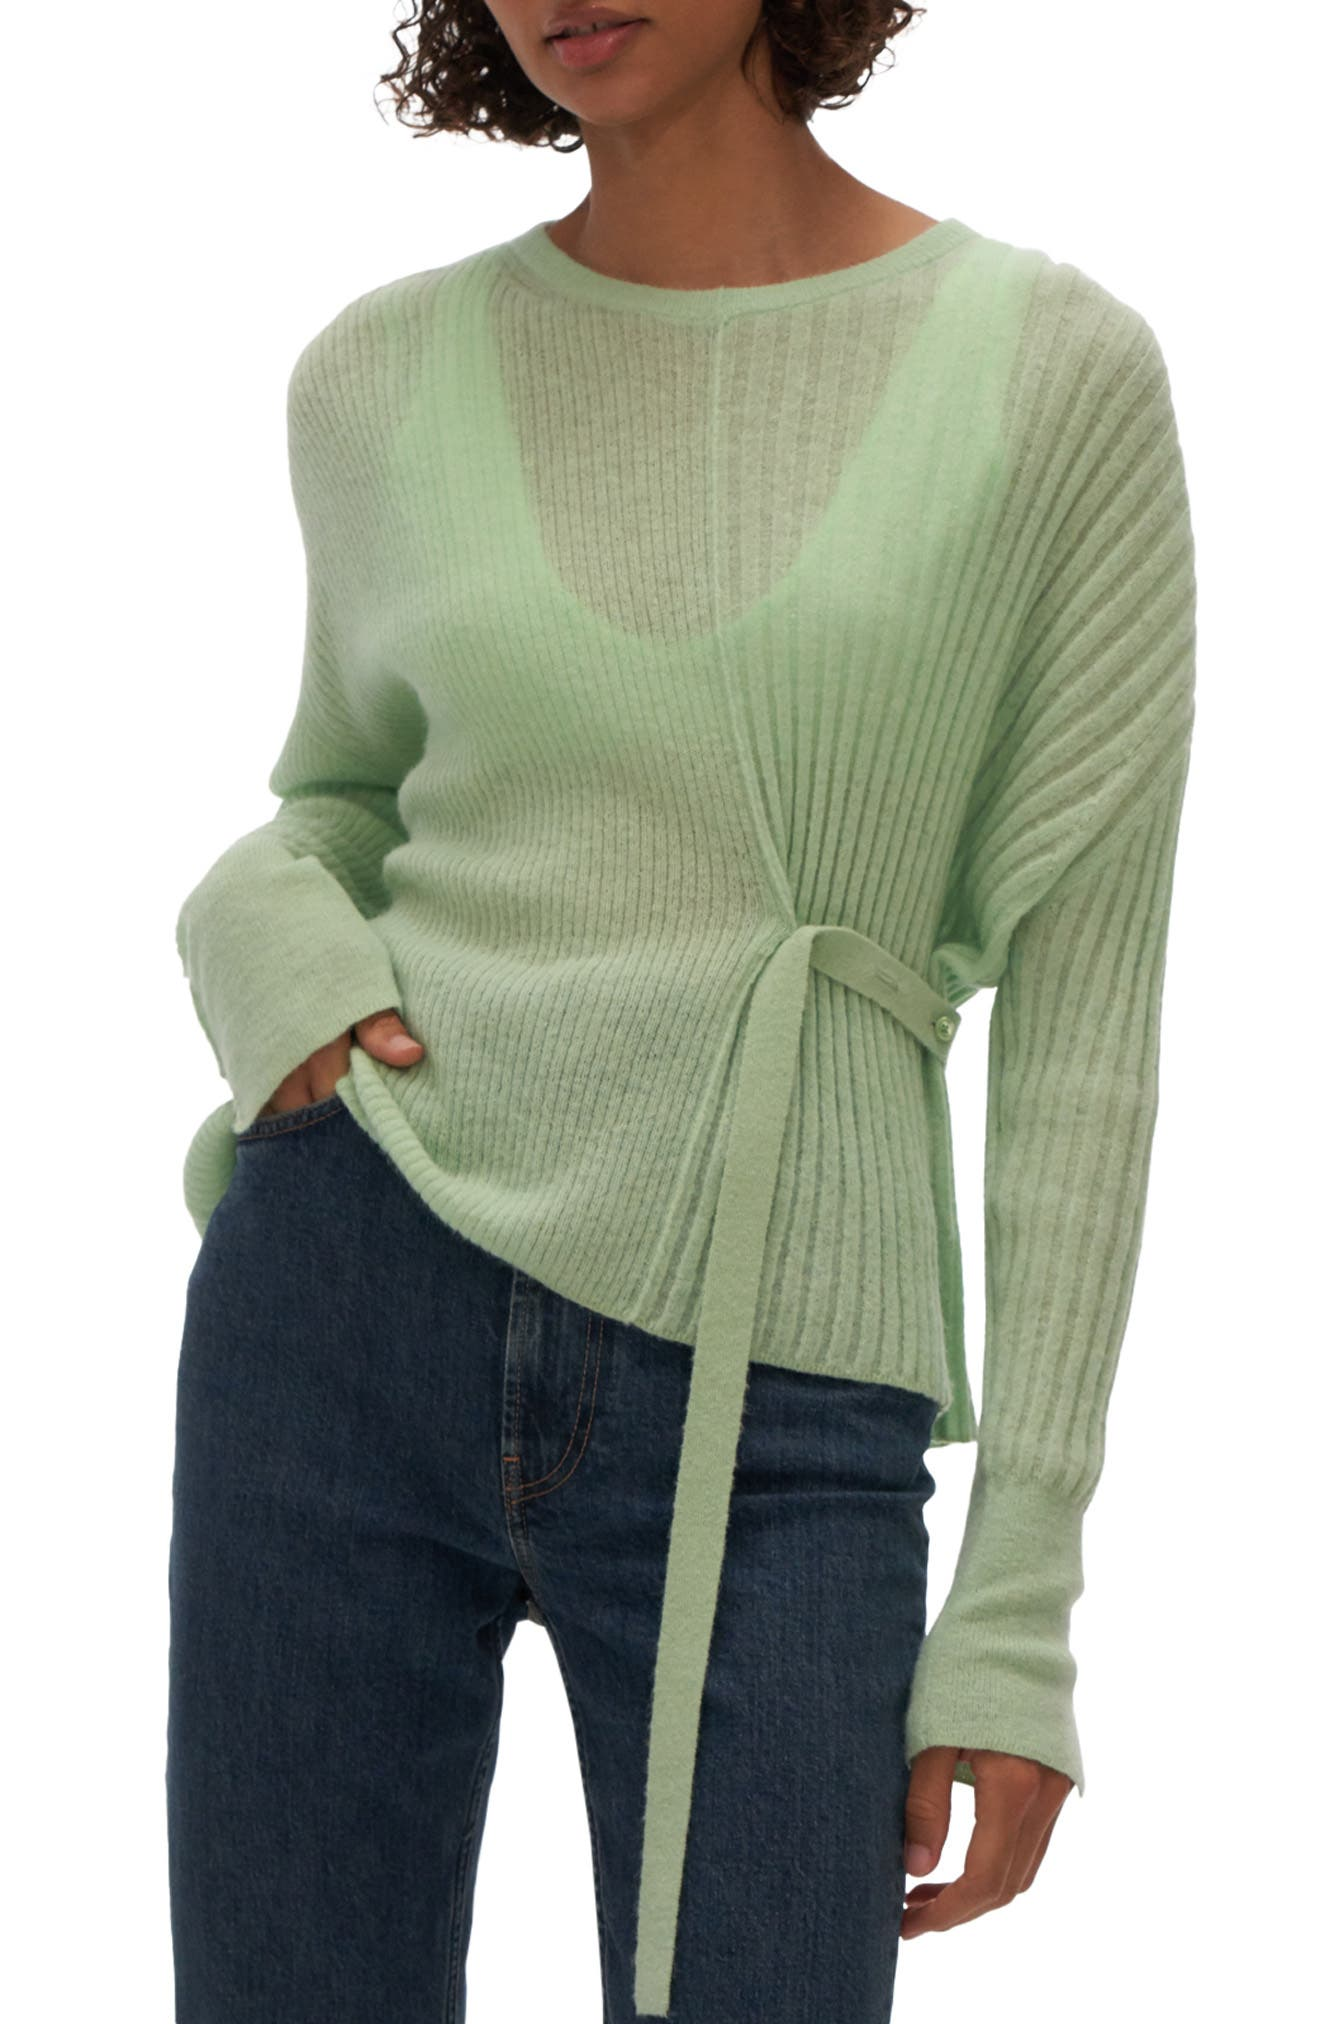 Helmut Lang Wool Blocked Linen Sweater Small NWT New Beige Sage Knit Top Pullove